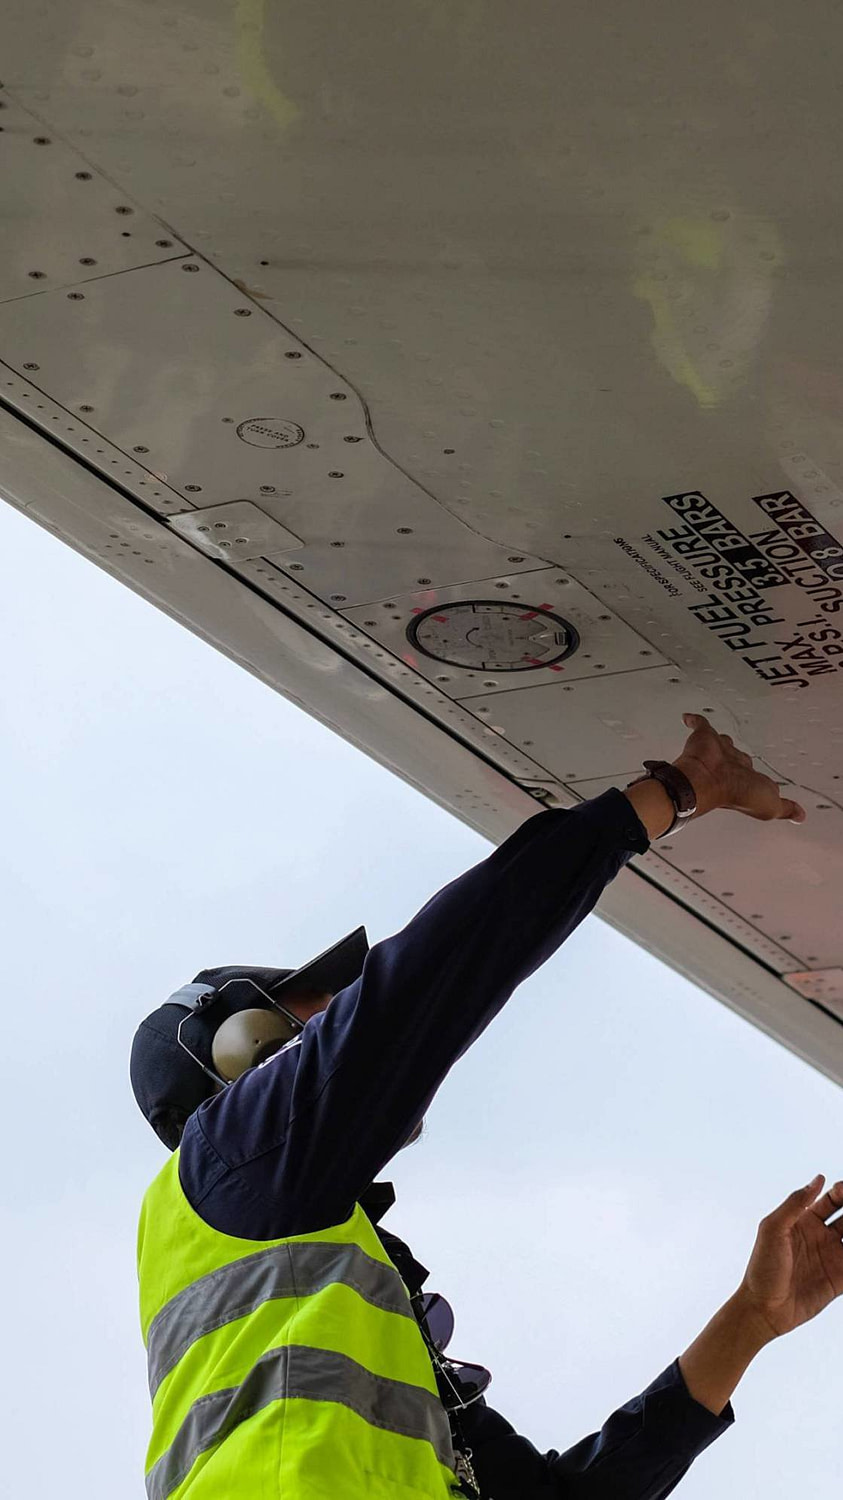 An aircraft maintenance technician working to maintain the safety of the aircraft.